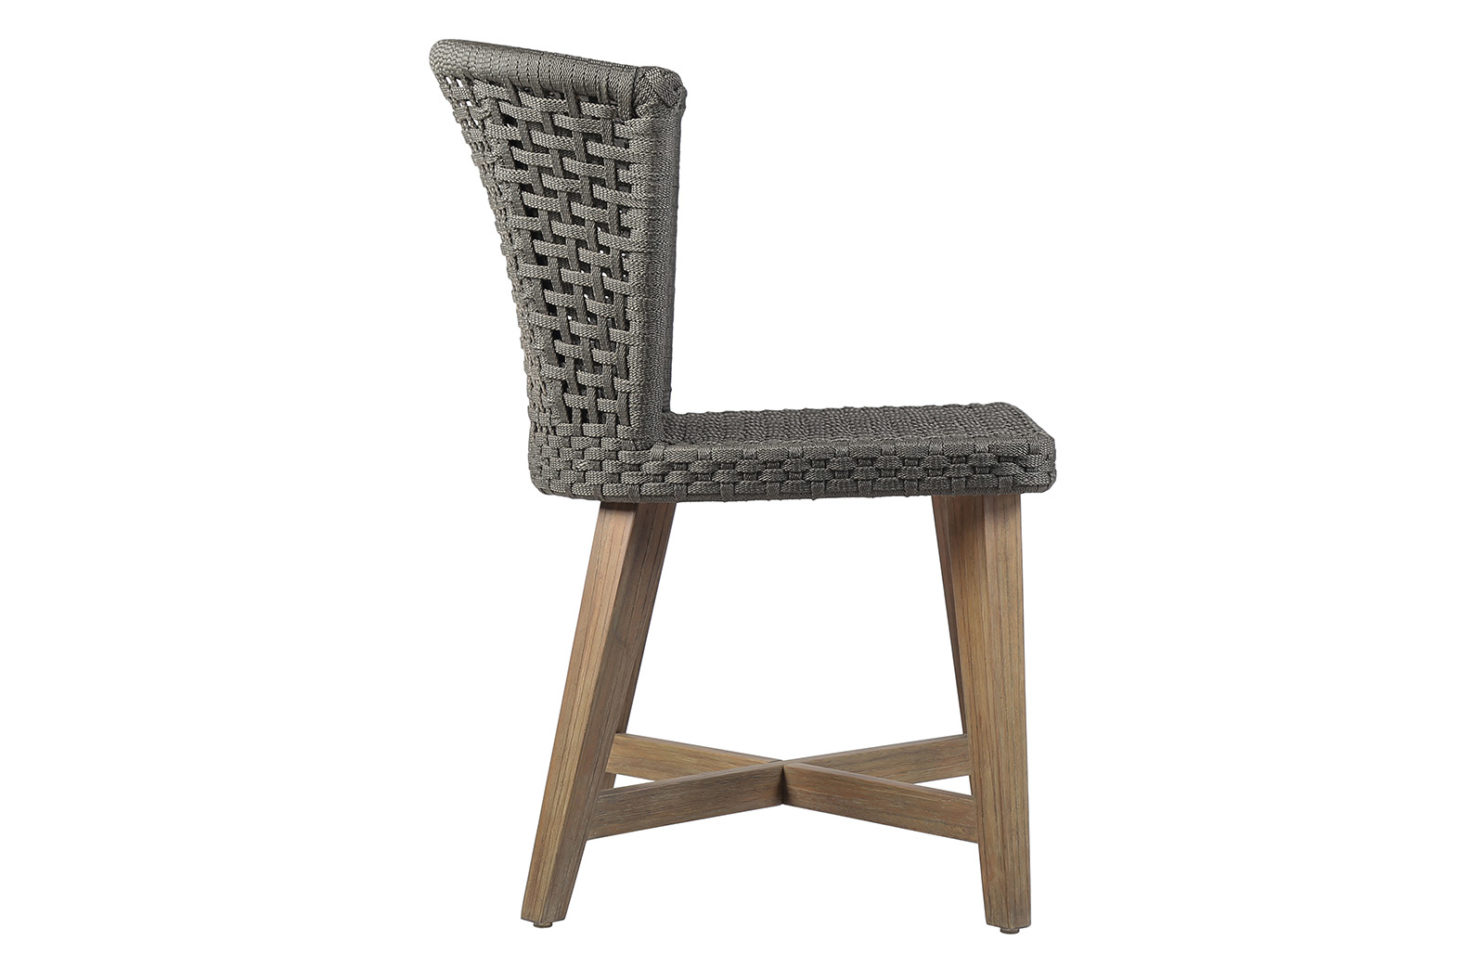 pioneer bistro chair 504FT402P2 E 1 side